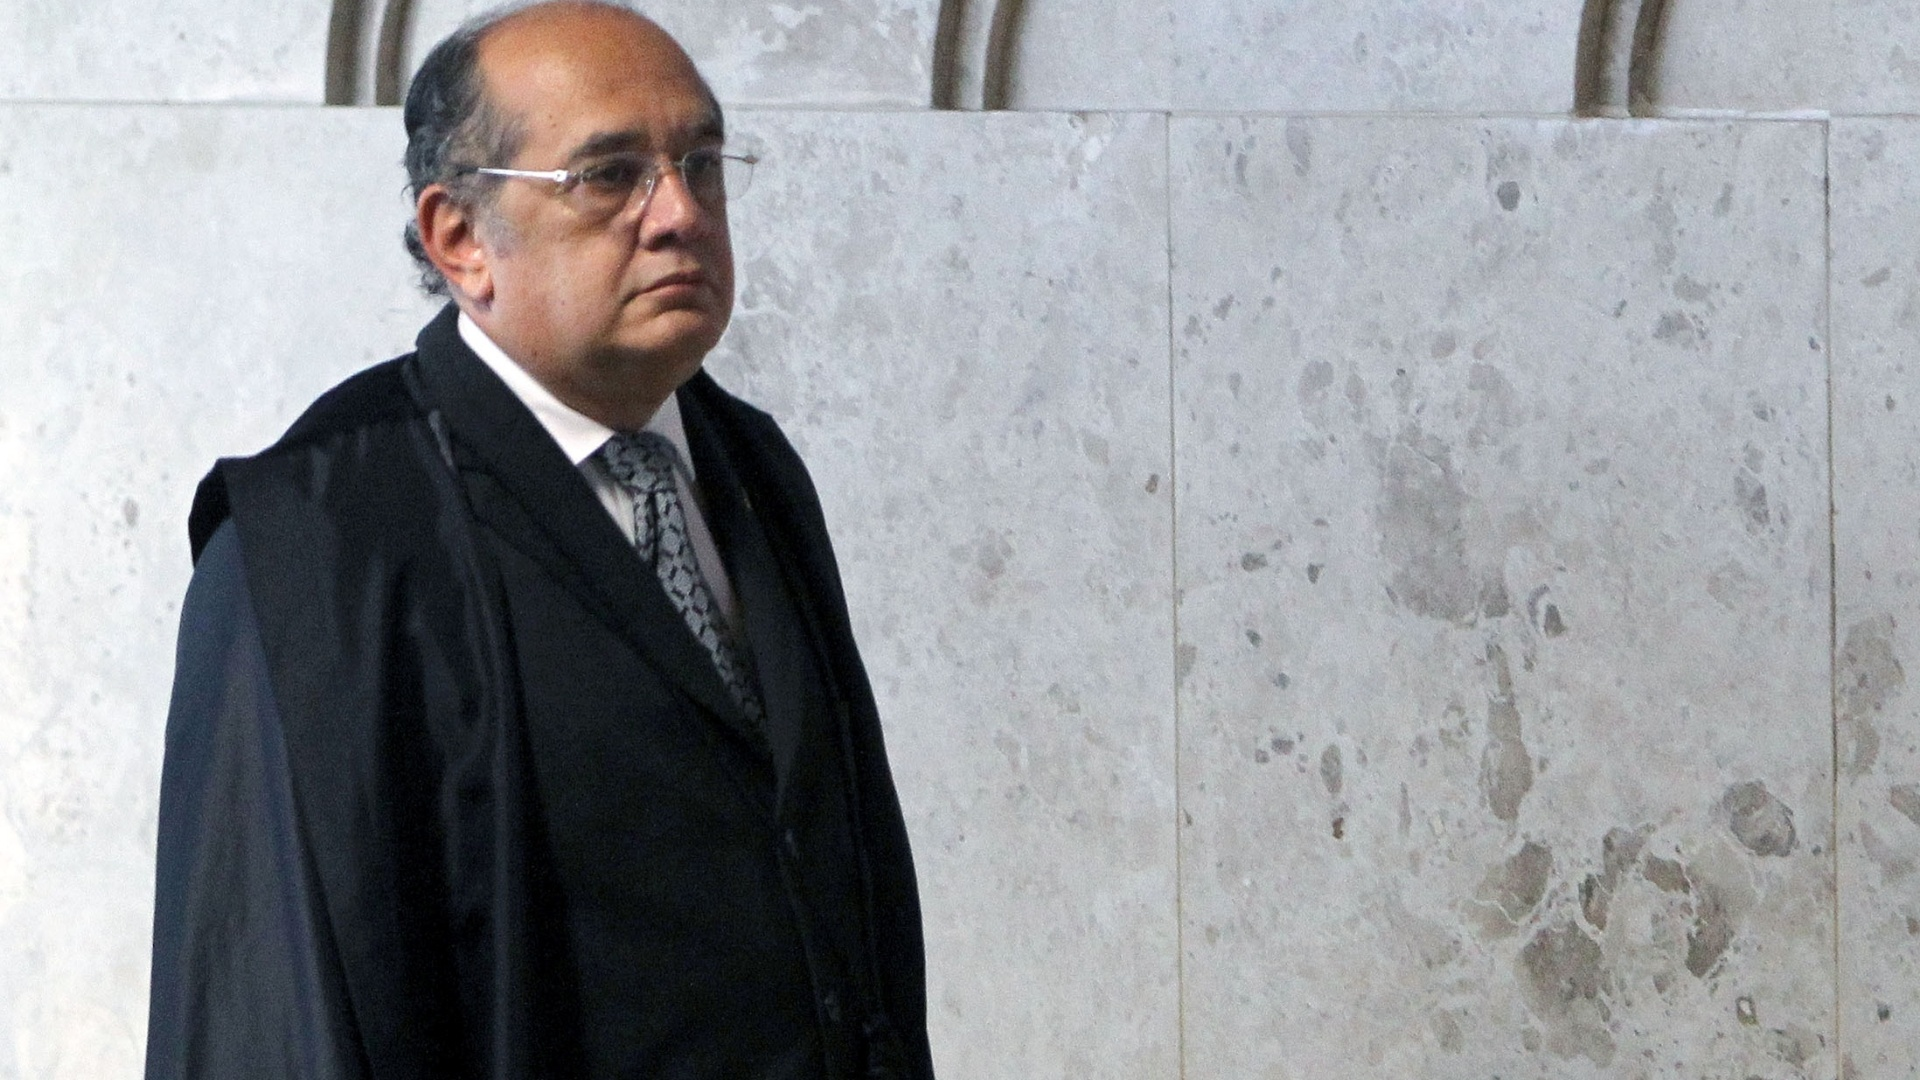 24.out.2012 - O ministro Gilmar Mendes entra no plenrio para sesso que deve terminar de fixar a pena de priso para o publicitrio Marcos Valrio. Mendes seguiu o voto do revisor, que deu pena menor que o relator para o caso de corrupo ativa 